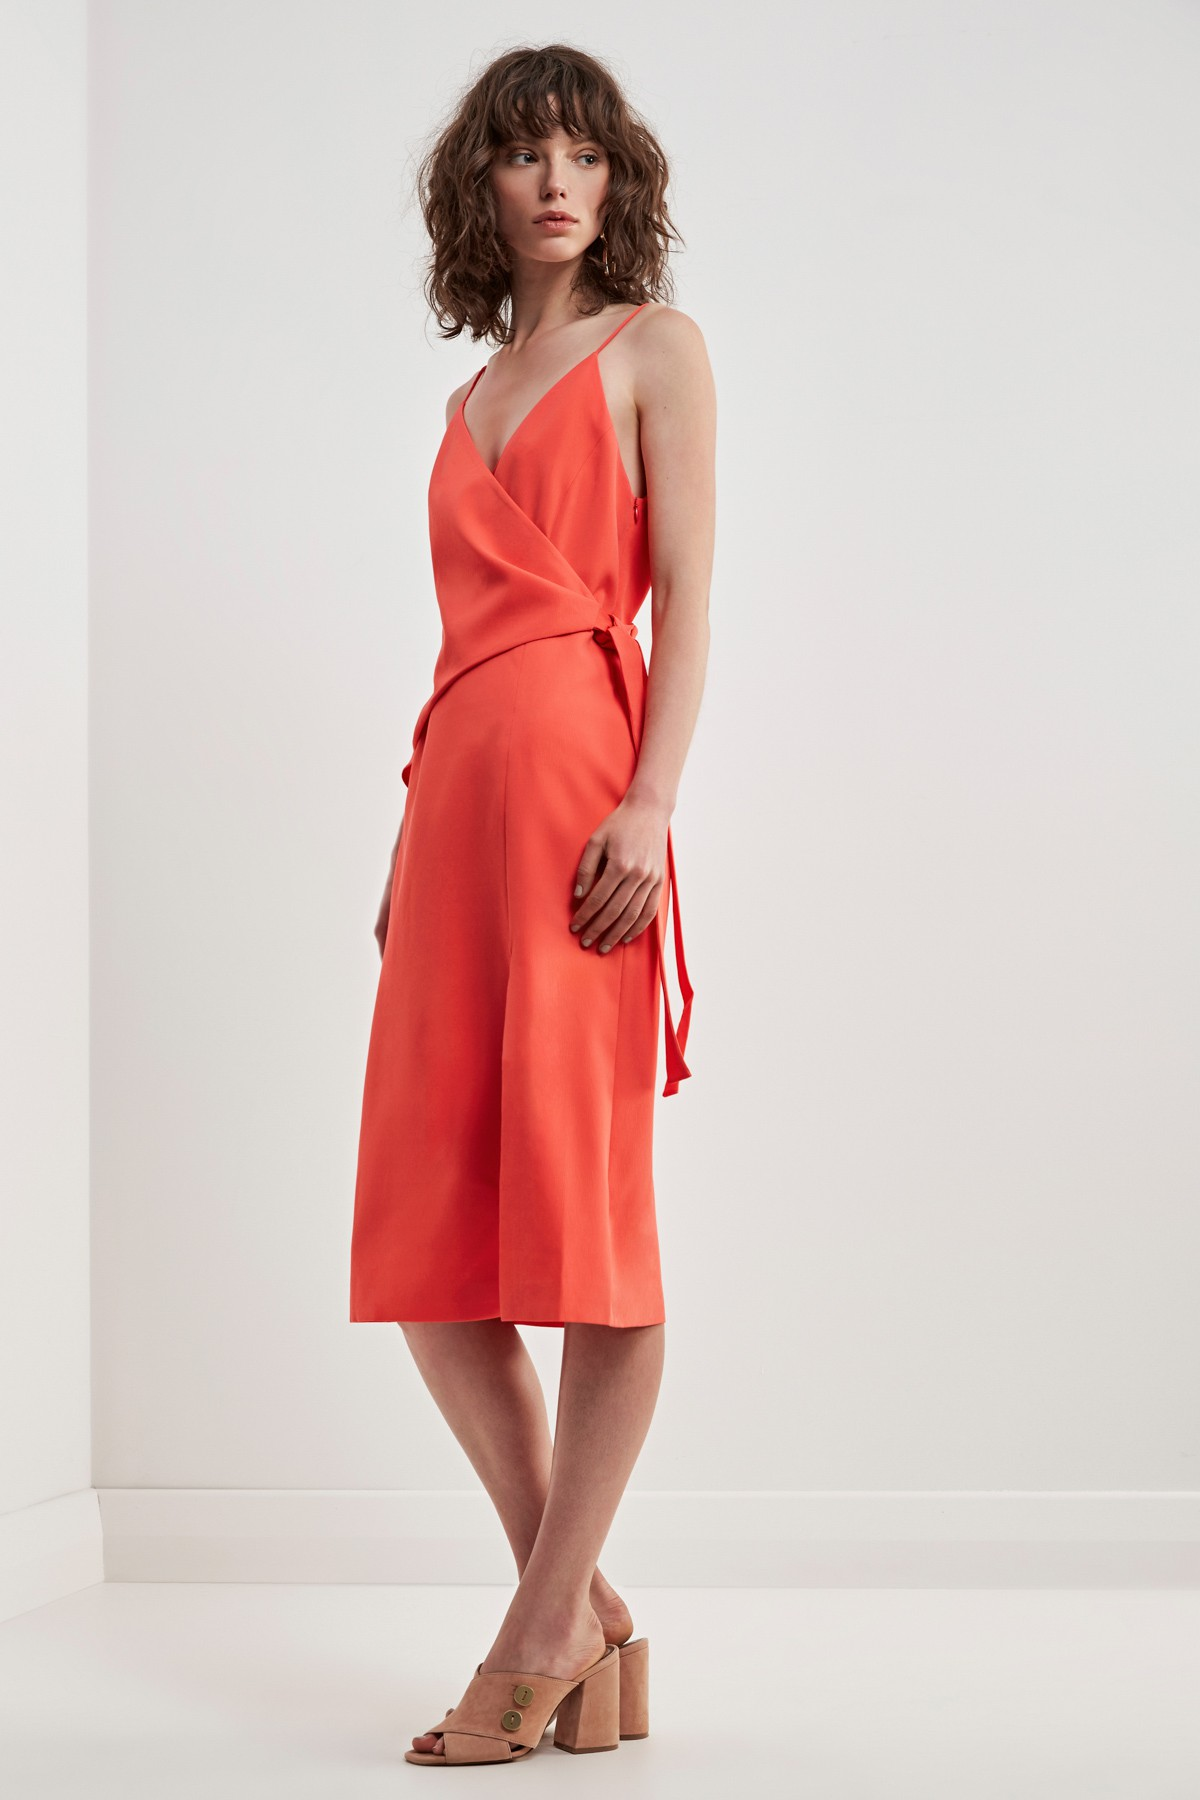 1612_cc_new_line_dress_morange_g_6982-15.jpg